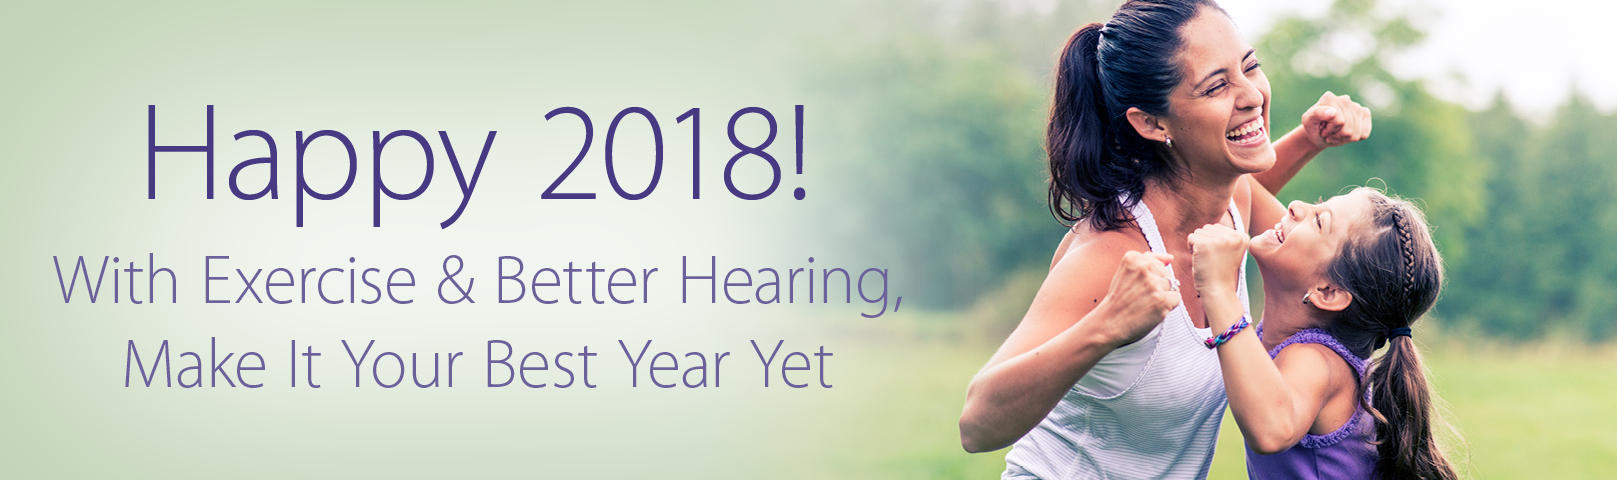 Family starting 2018 with exercise and healthy hearing